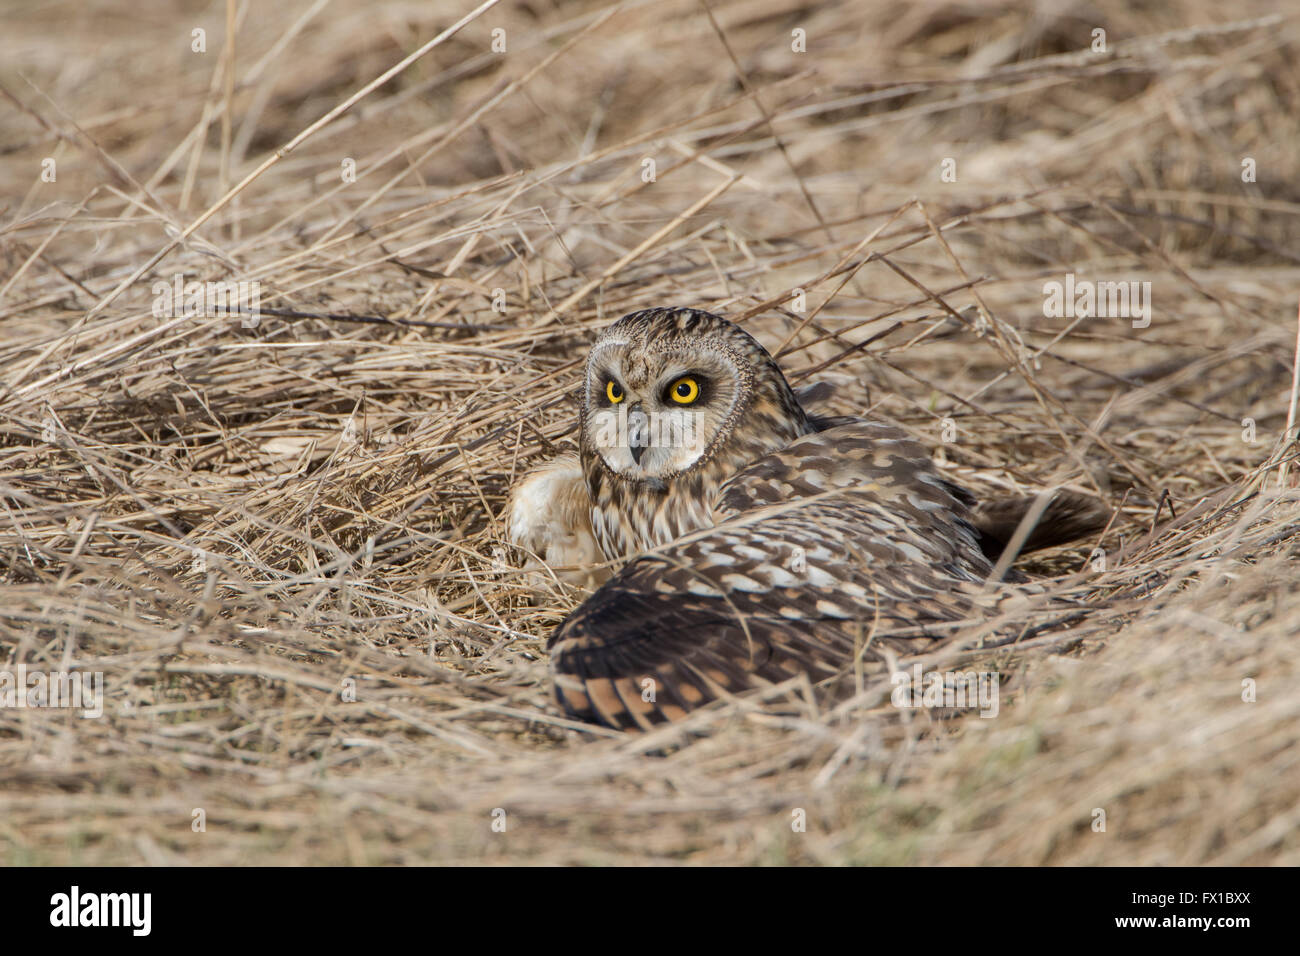 Short-eared owl (Asio flammeus) mantling prey in long grass, in the Cotswolds, Gloucestershire, England, UK. - Stock Image